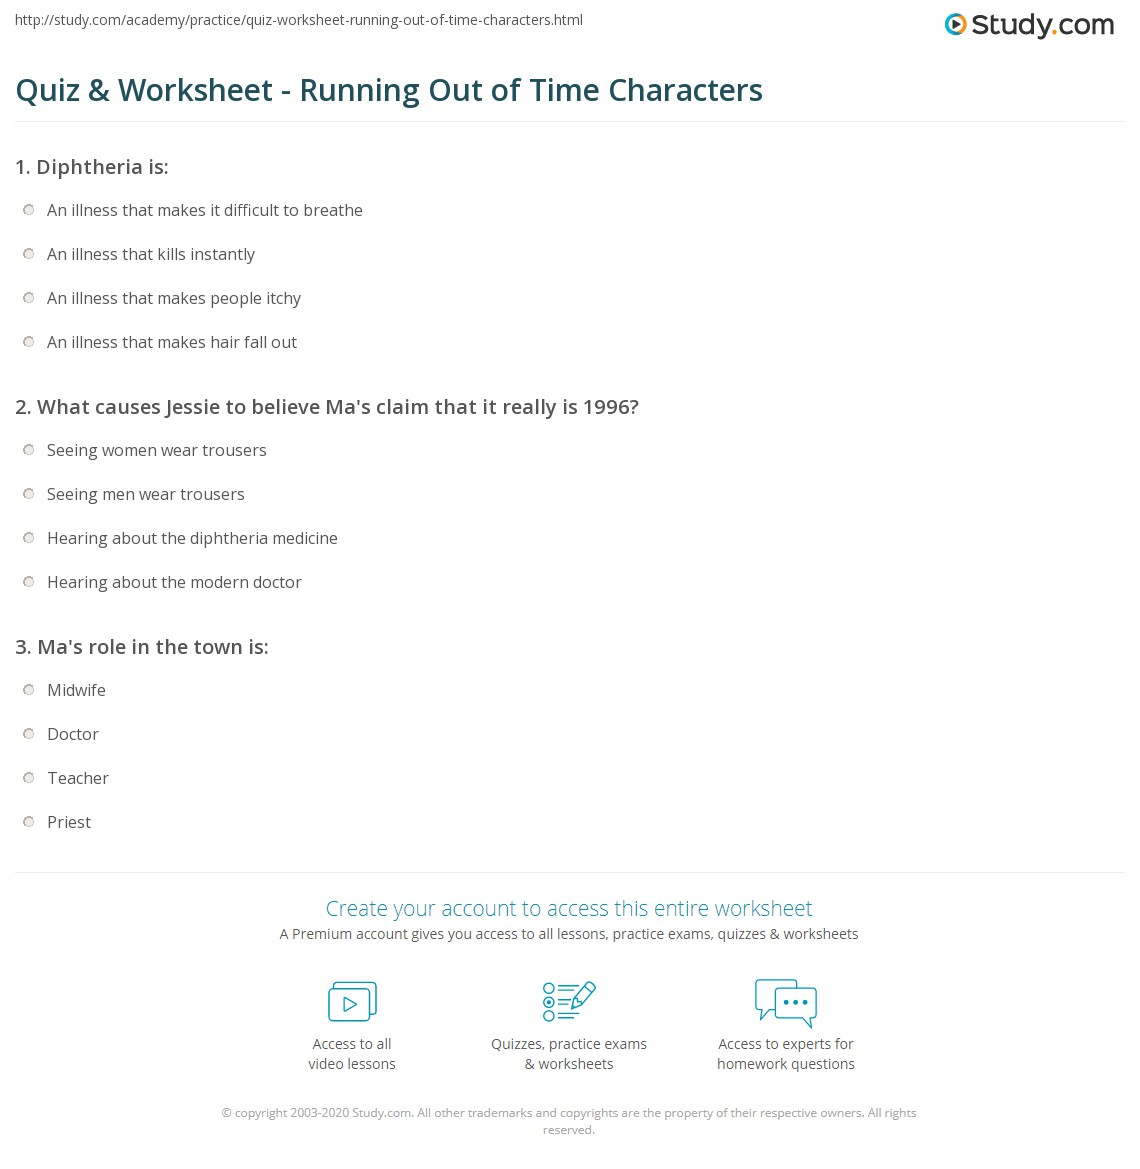 Quiz Worksheet Running Out Of Time Characters Studycom